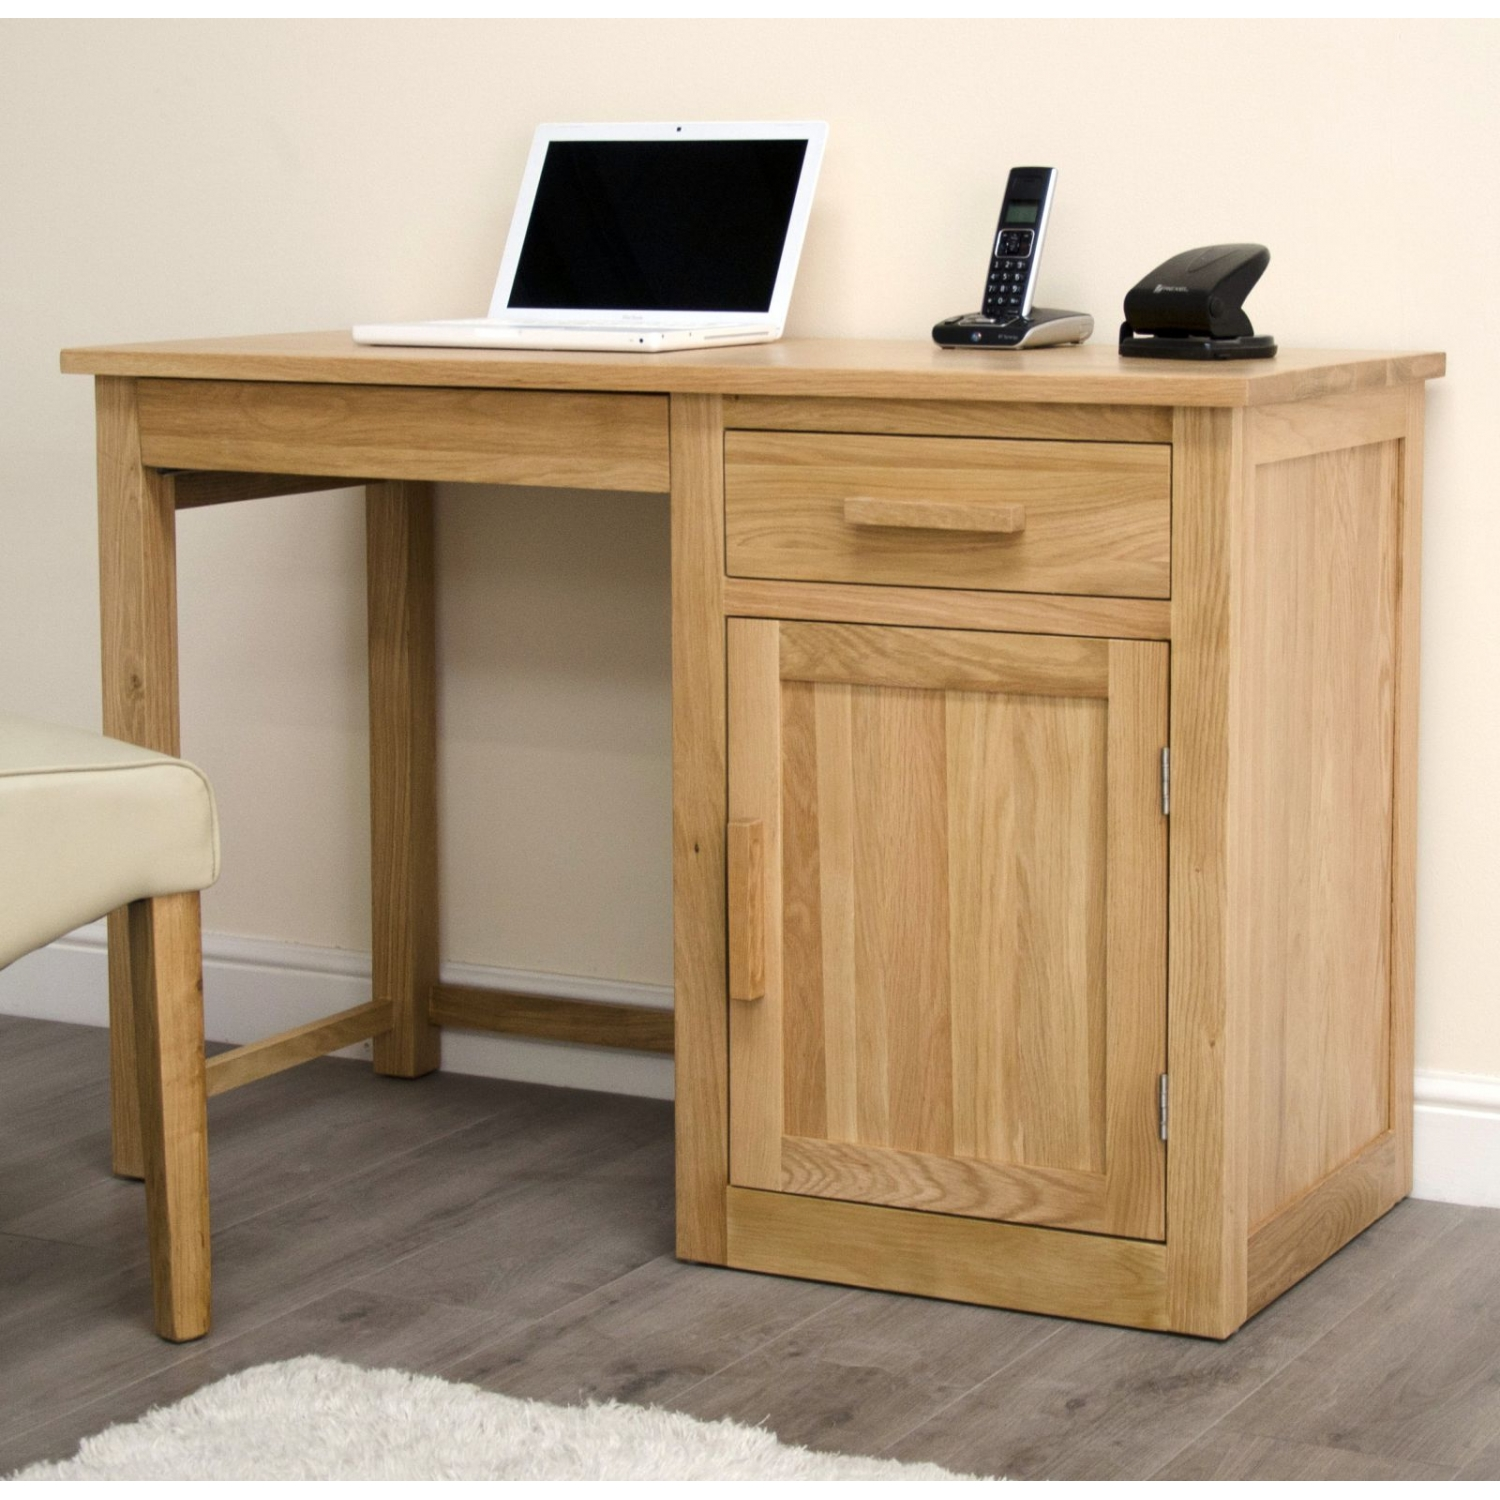 arden small office pc computer desk solid oak furniture with keyboard drawer. Black Bedroom Furniture Sets. Home Design Ideas